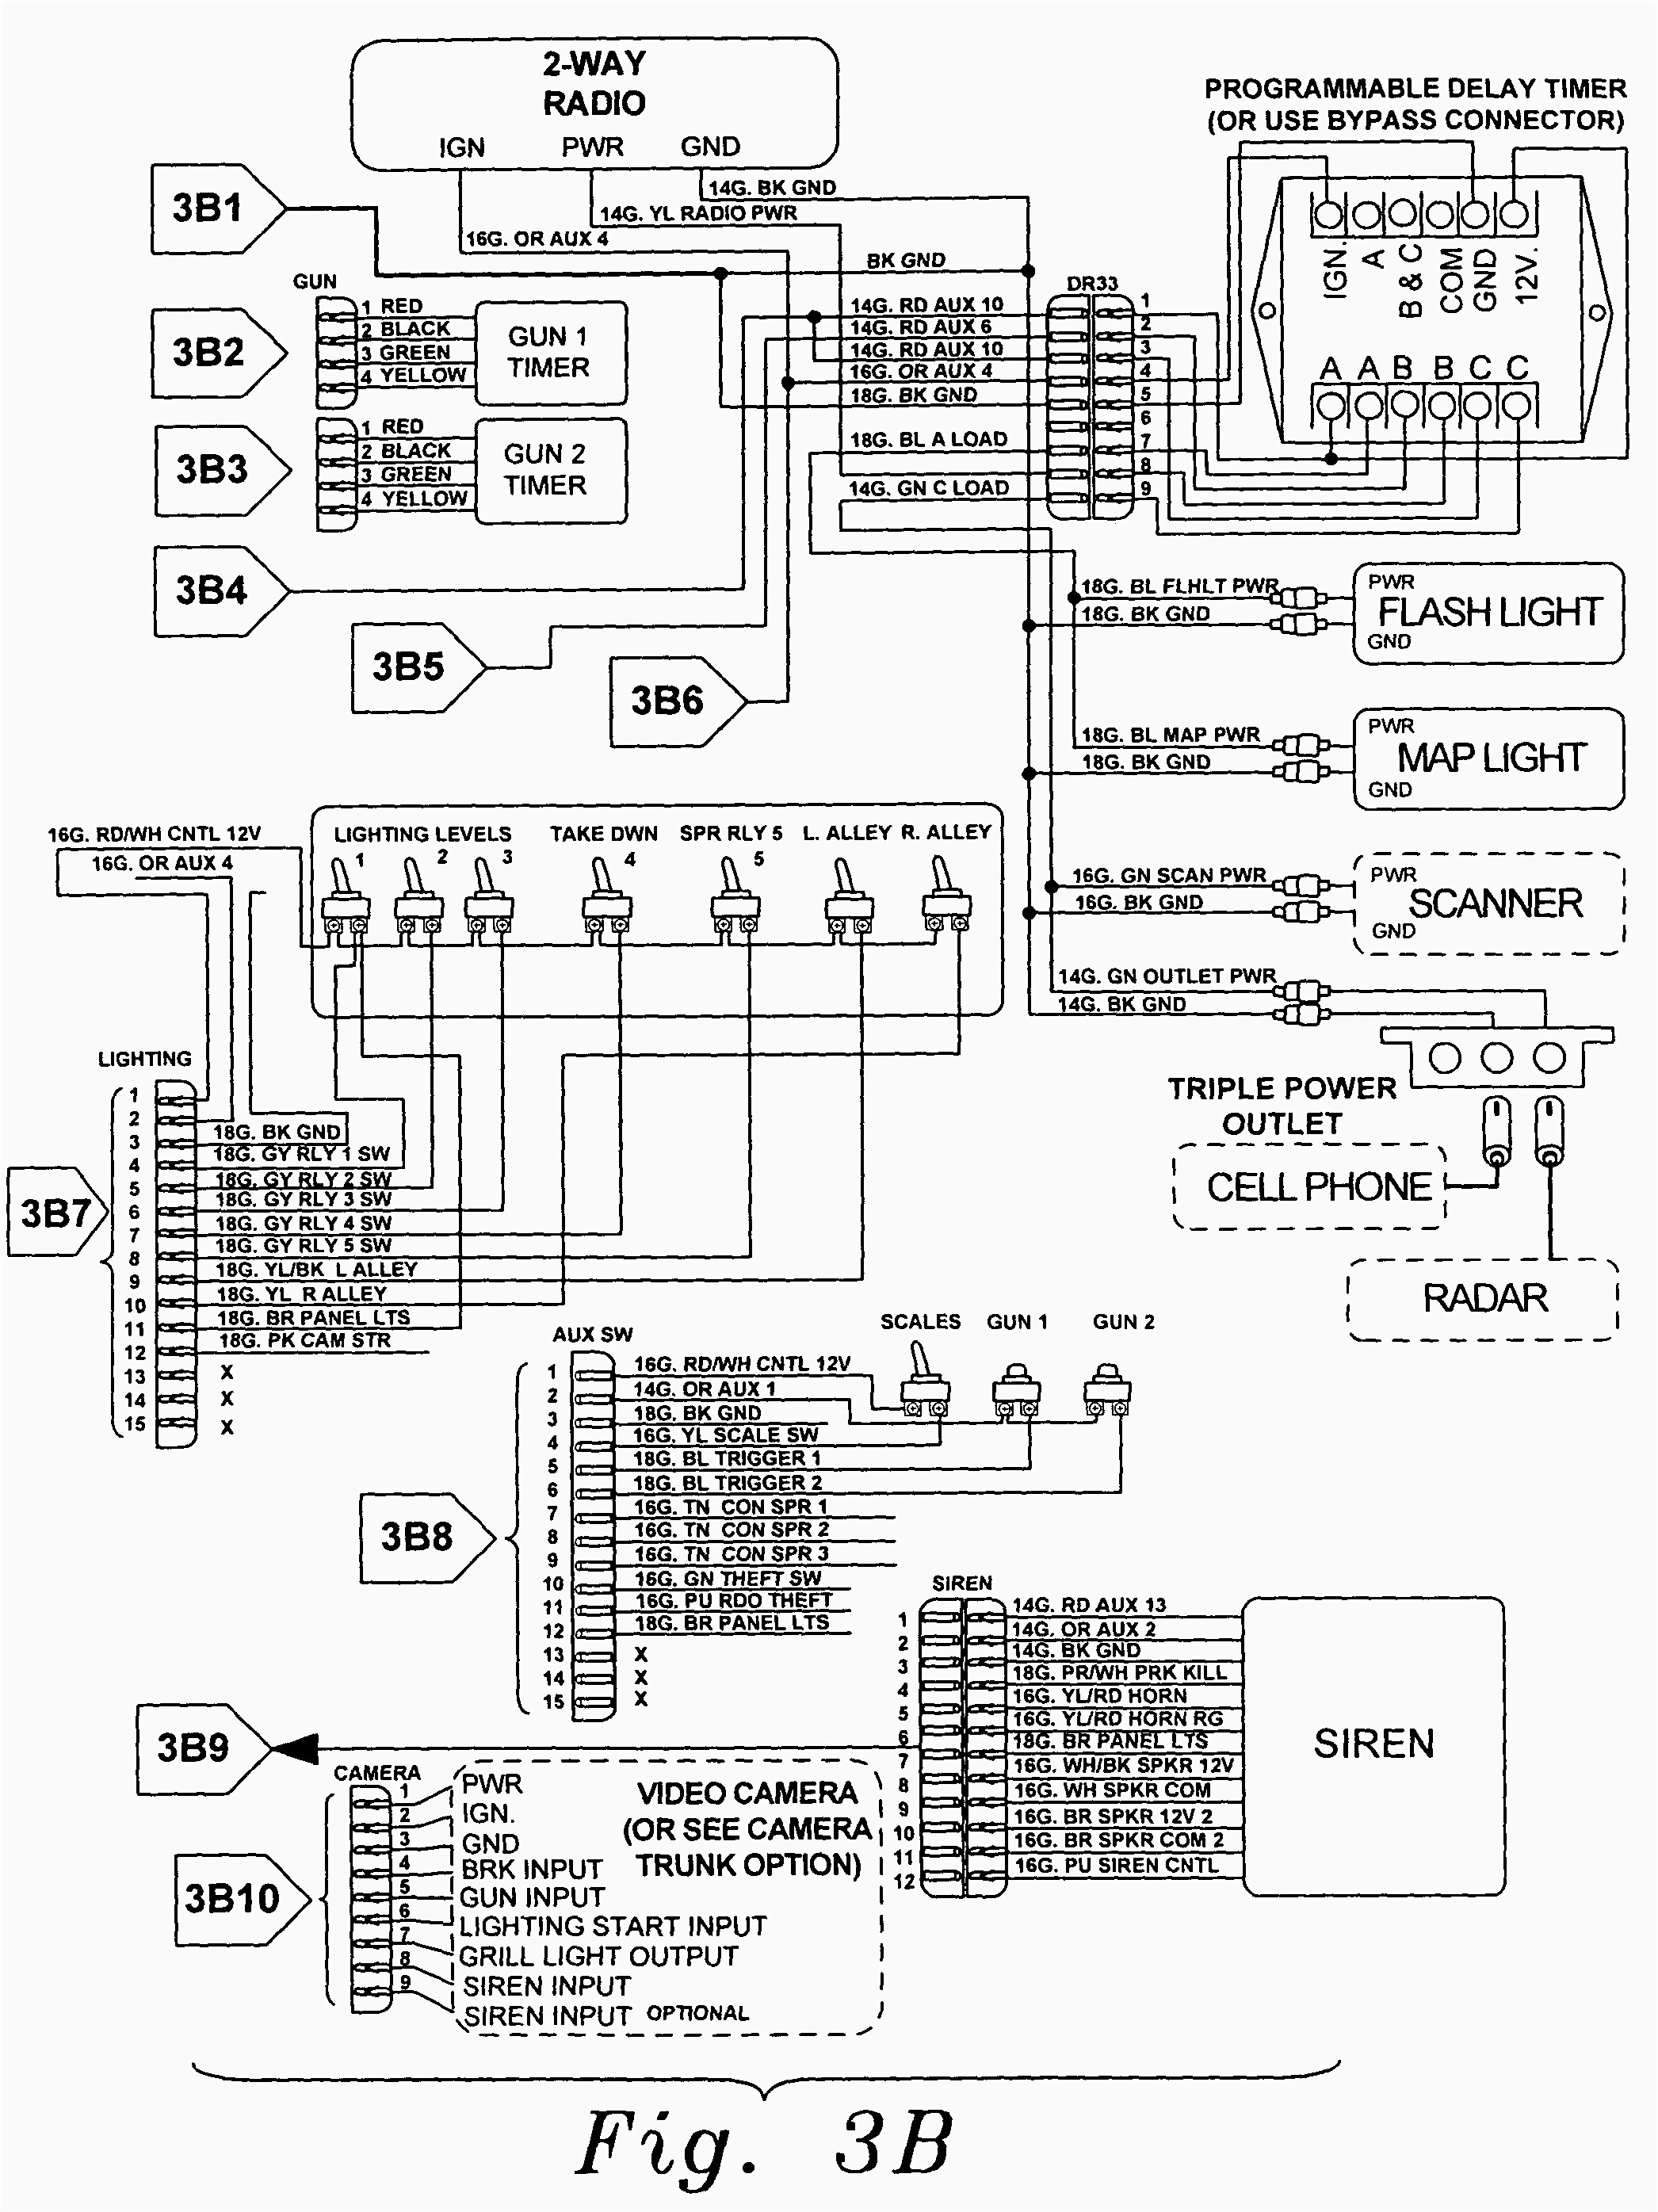 whelen justice lightbar wiring diagram Download-whelen led light bar wiring diagram new whelen liberty light bar rh gidn co 11-p